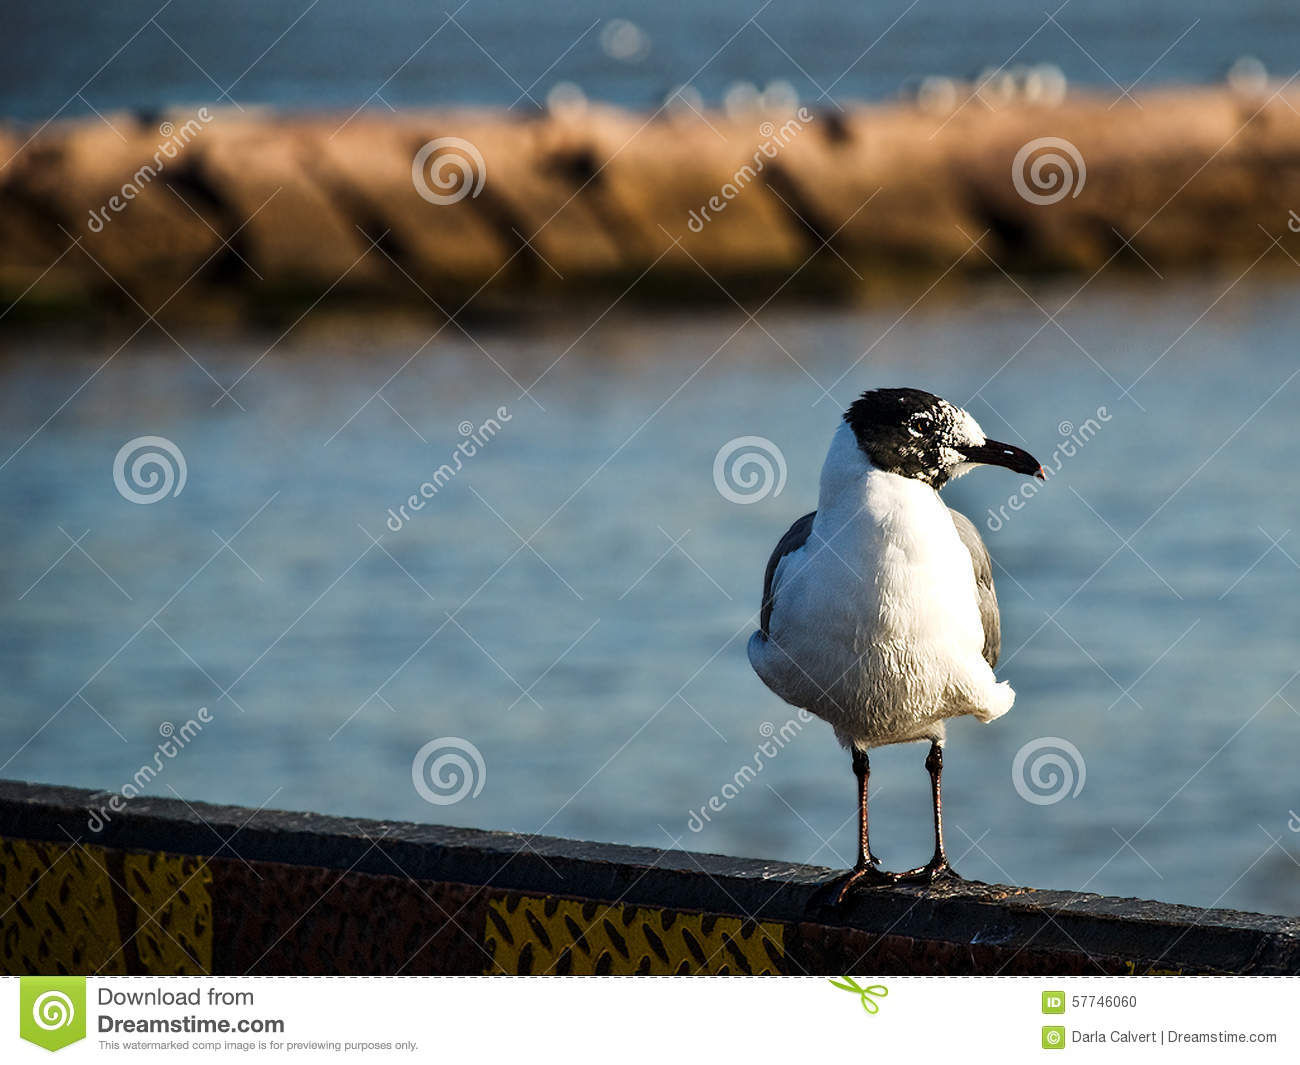 Seagull on Boat